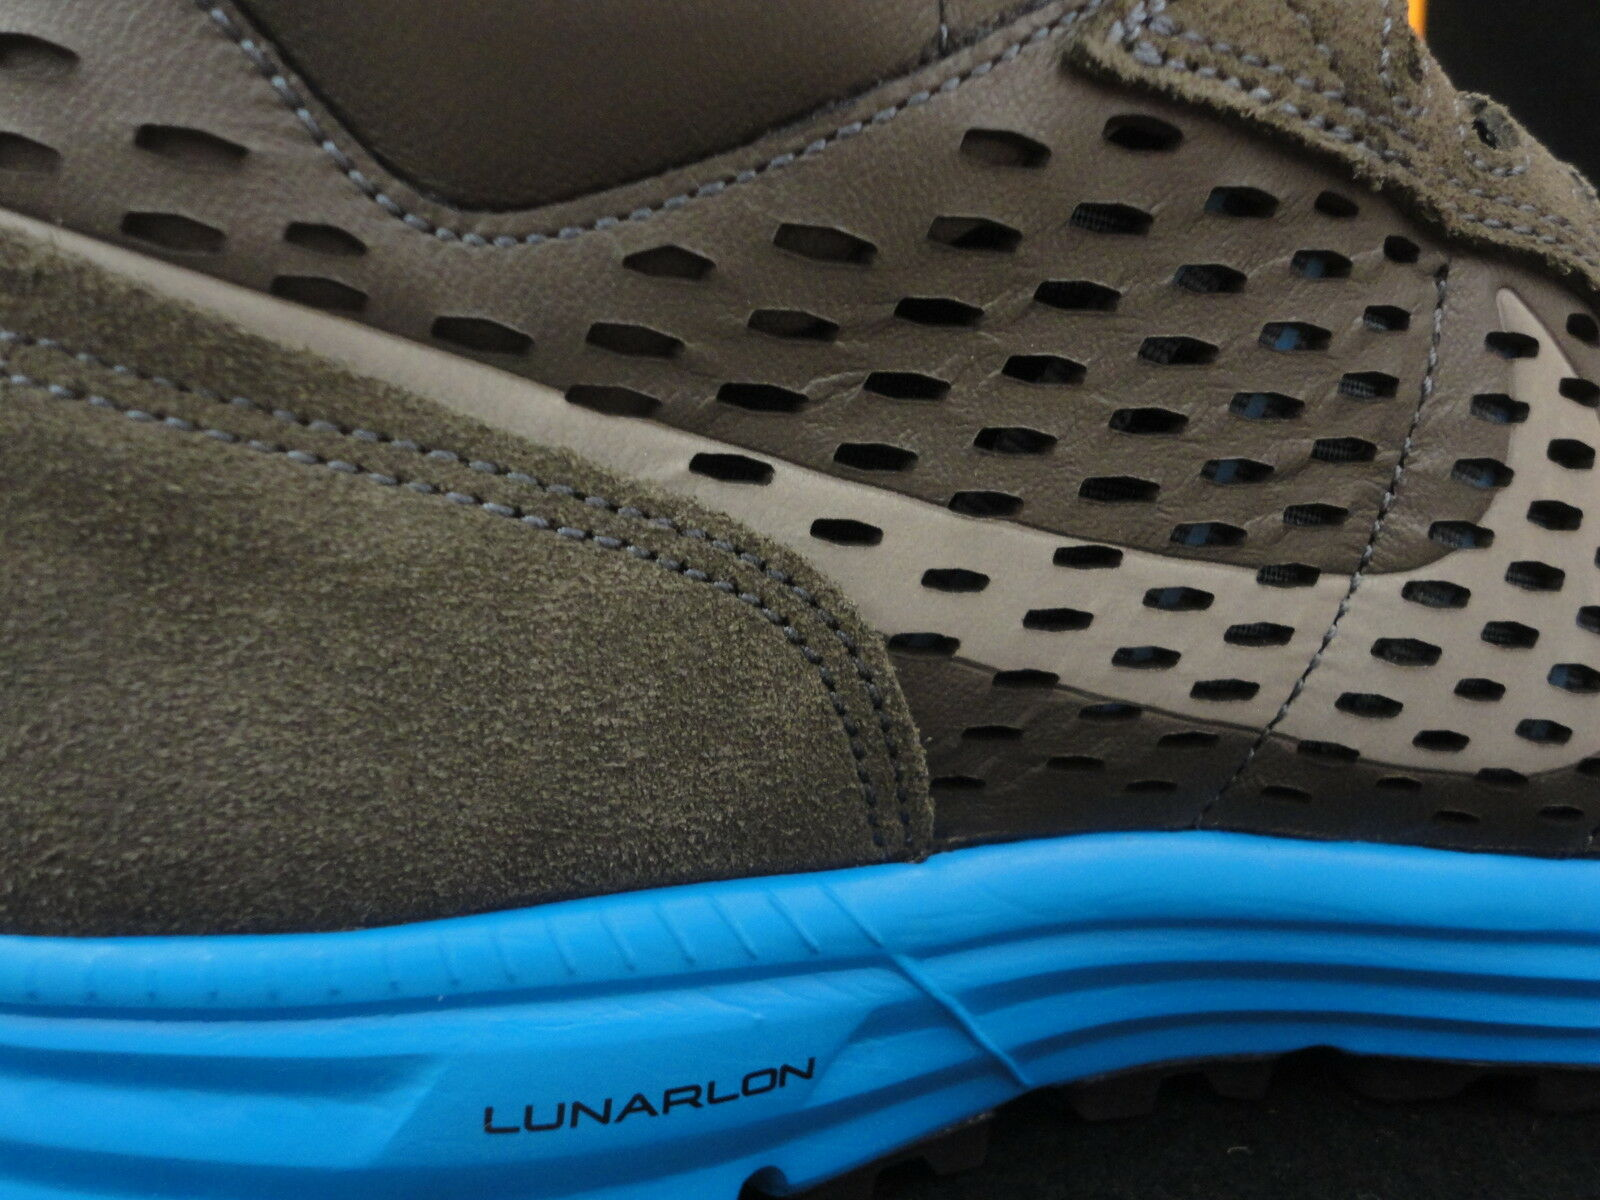 Nike Lunar LDV Trail Mid, Lunarlon Sneaker boot, Comfortable best-selling model of the brand